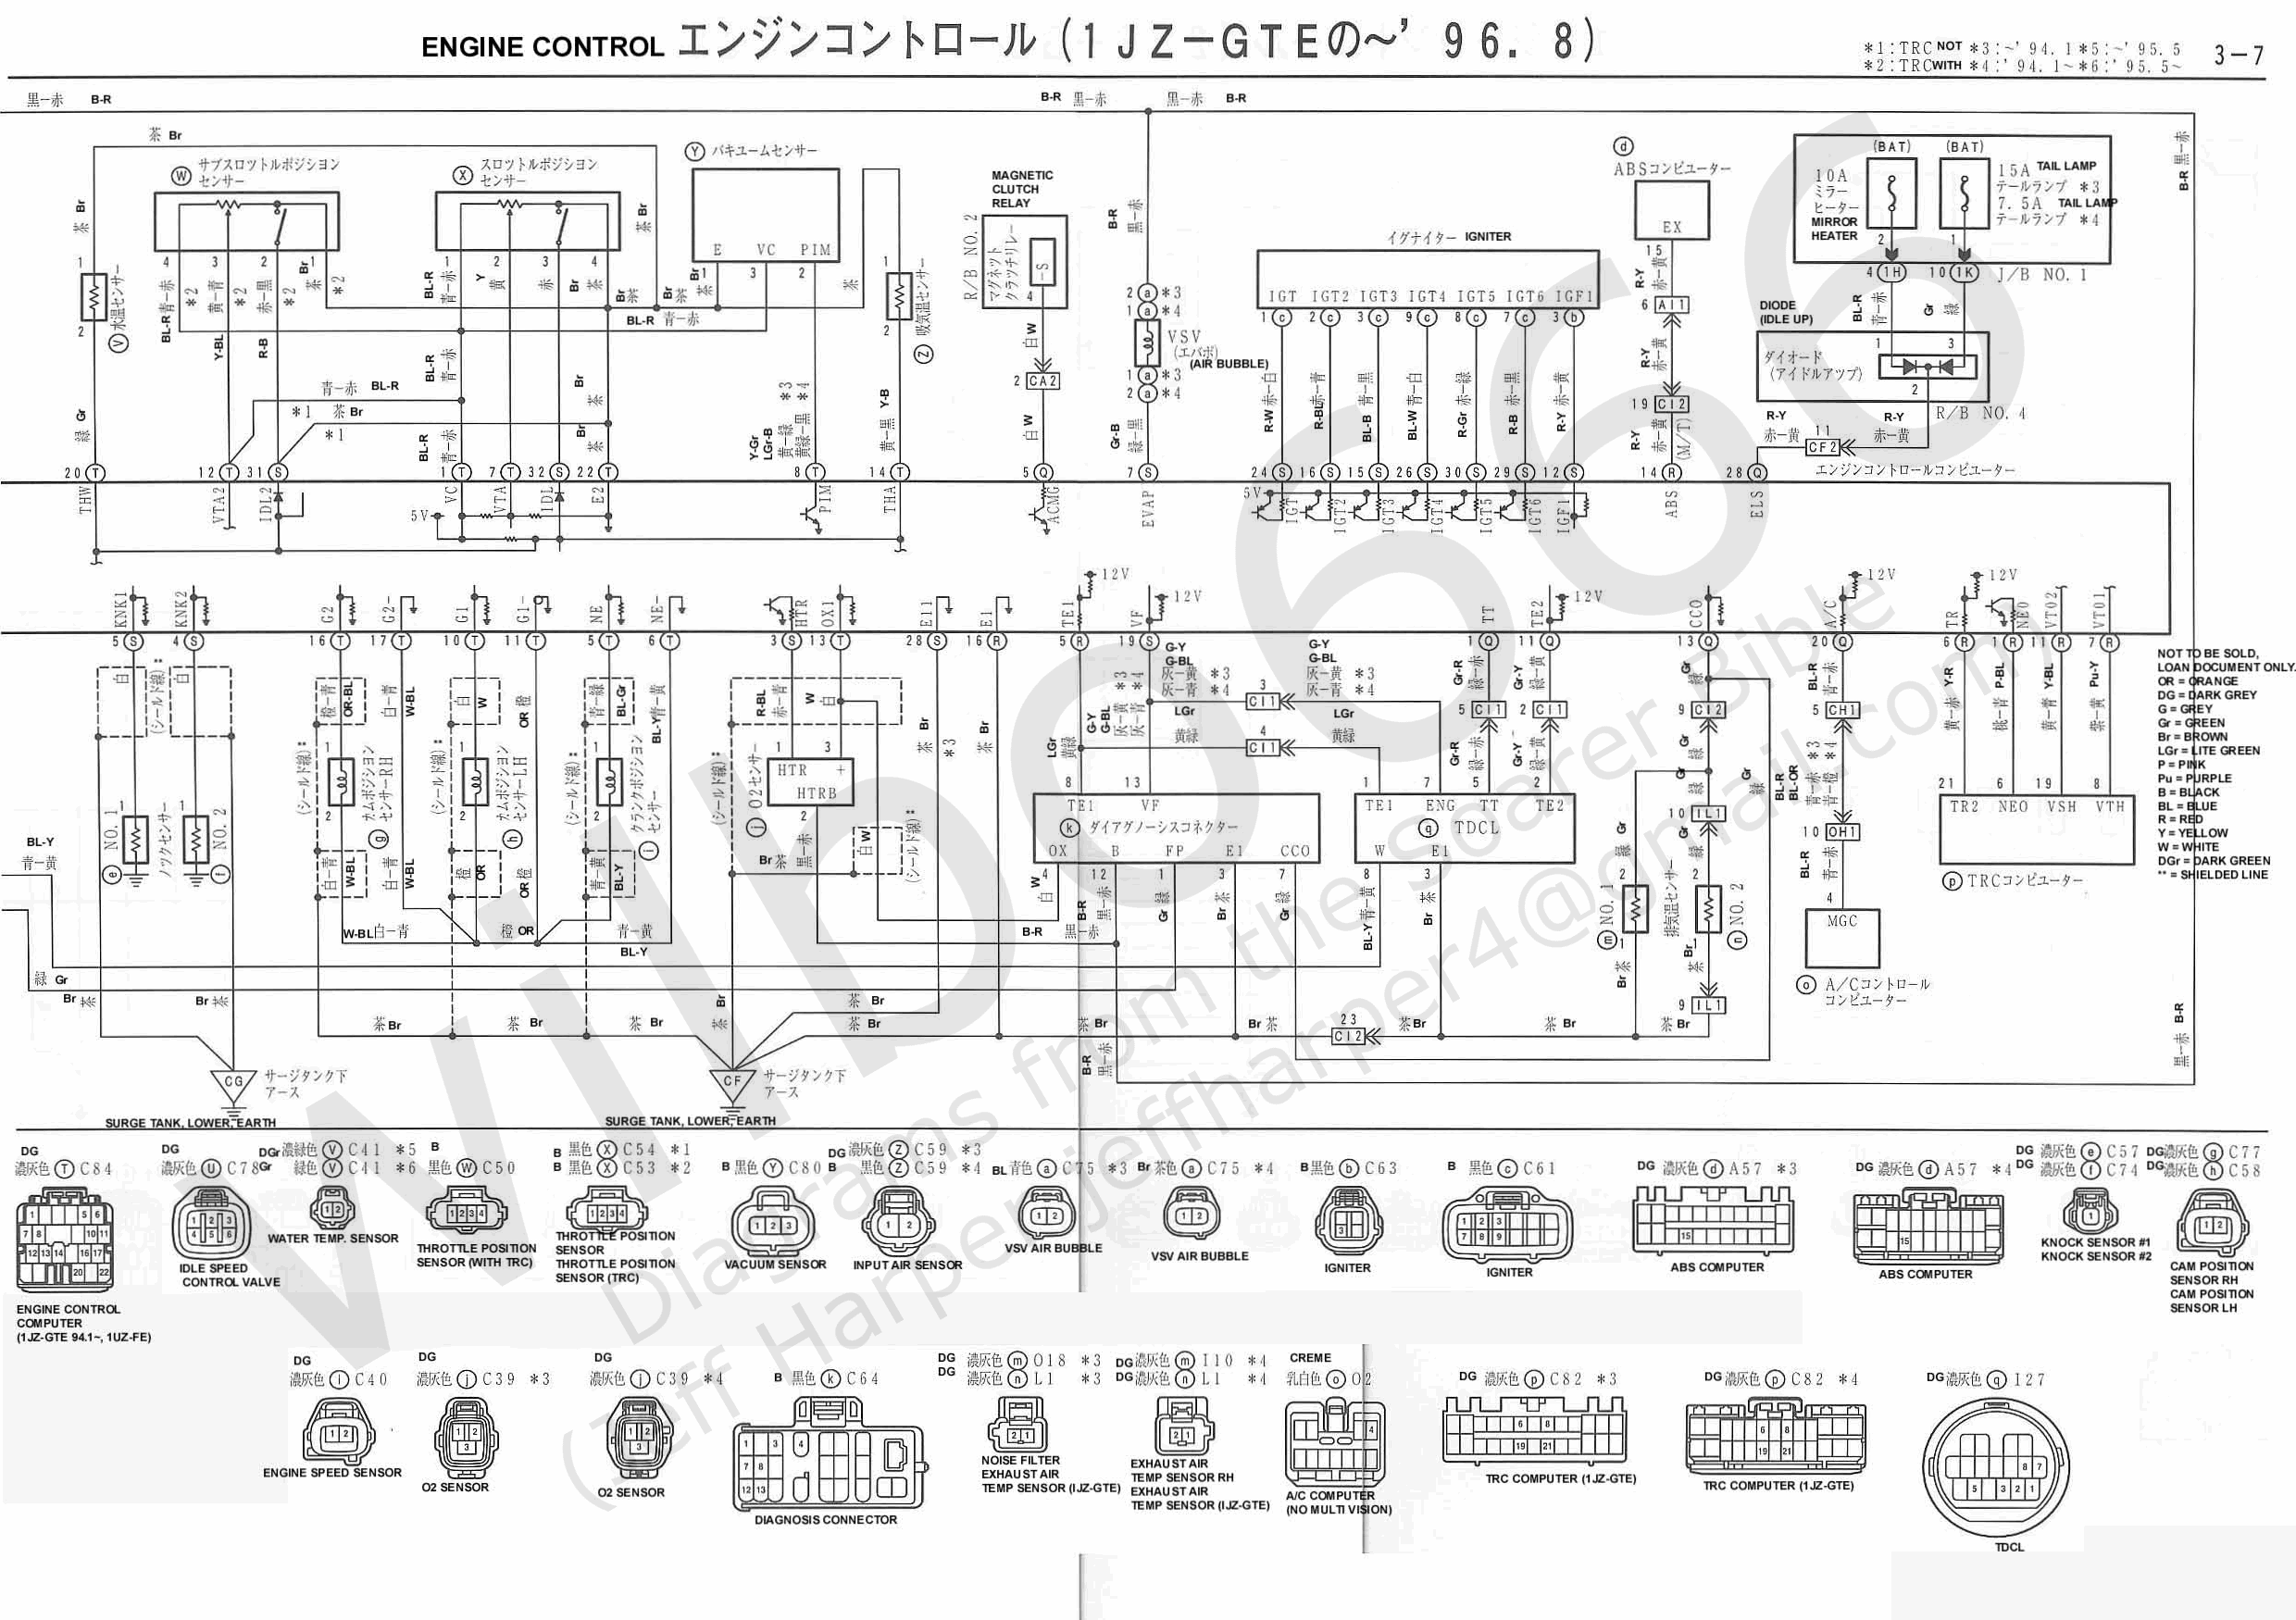 xZZ3x Electrical Wiring Diagram 6737105 3 7 wilbo666 [licensed for non commercial use only] mirror 1jz gte 1jzgte wiring harness at fashall.co